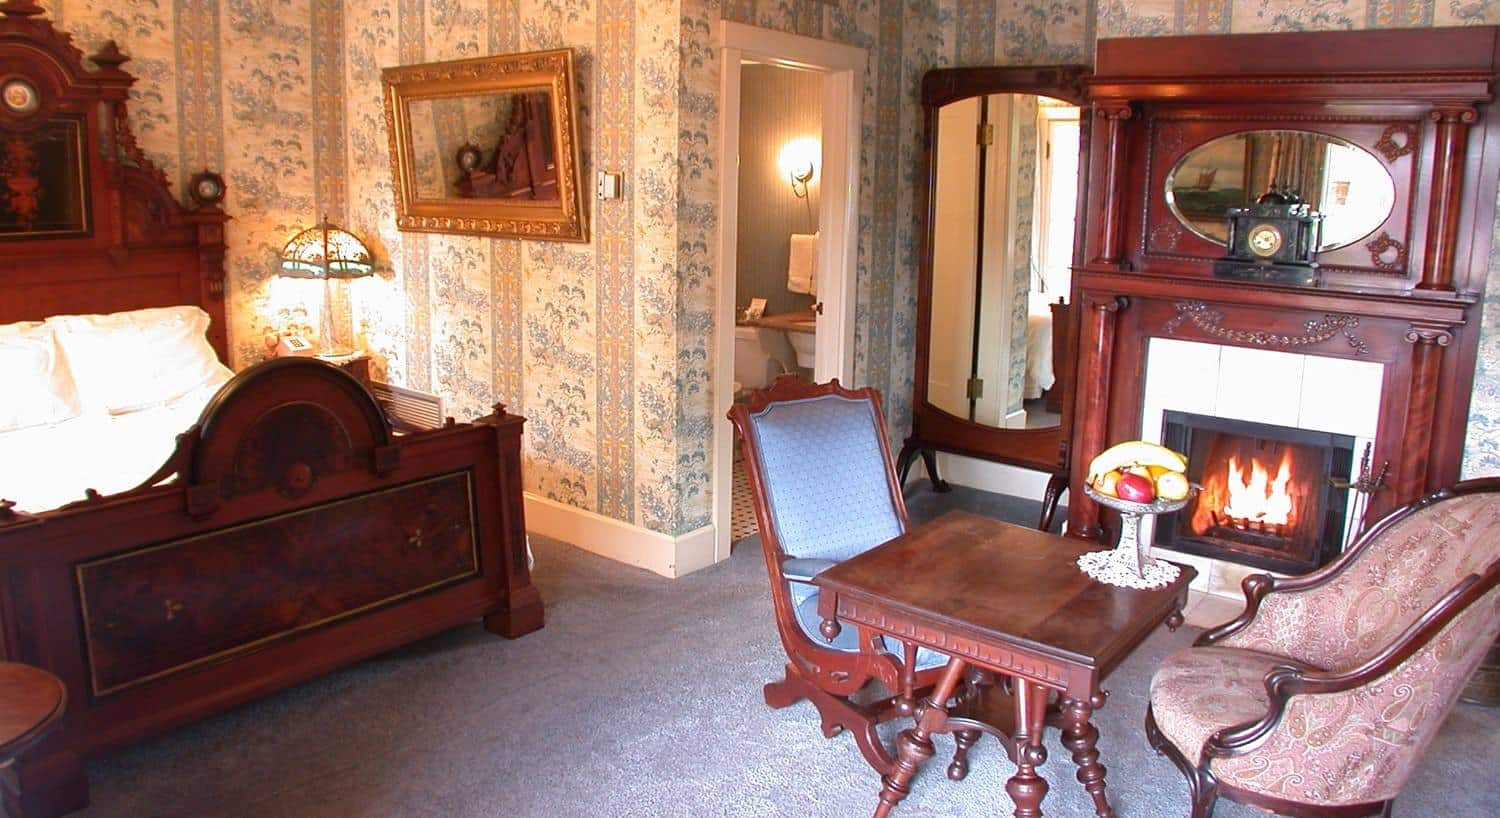 Captains guest room, pink and blue floral and striped walls, carved bed with tall headboard, fireplace. two chairs, square table